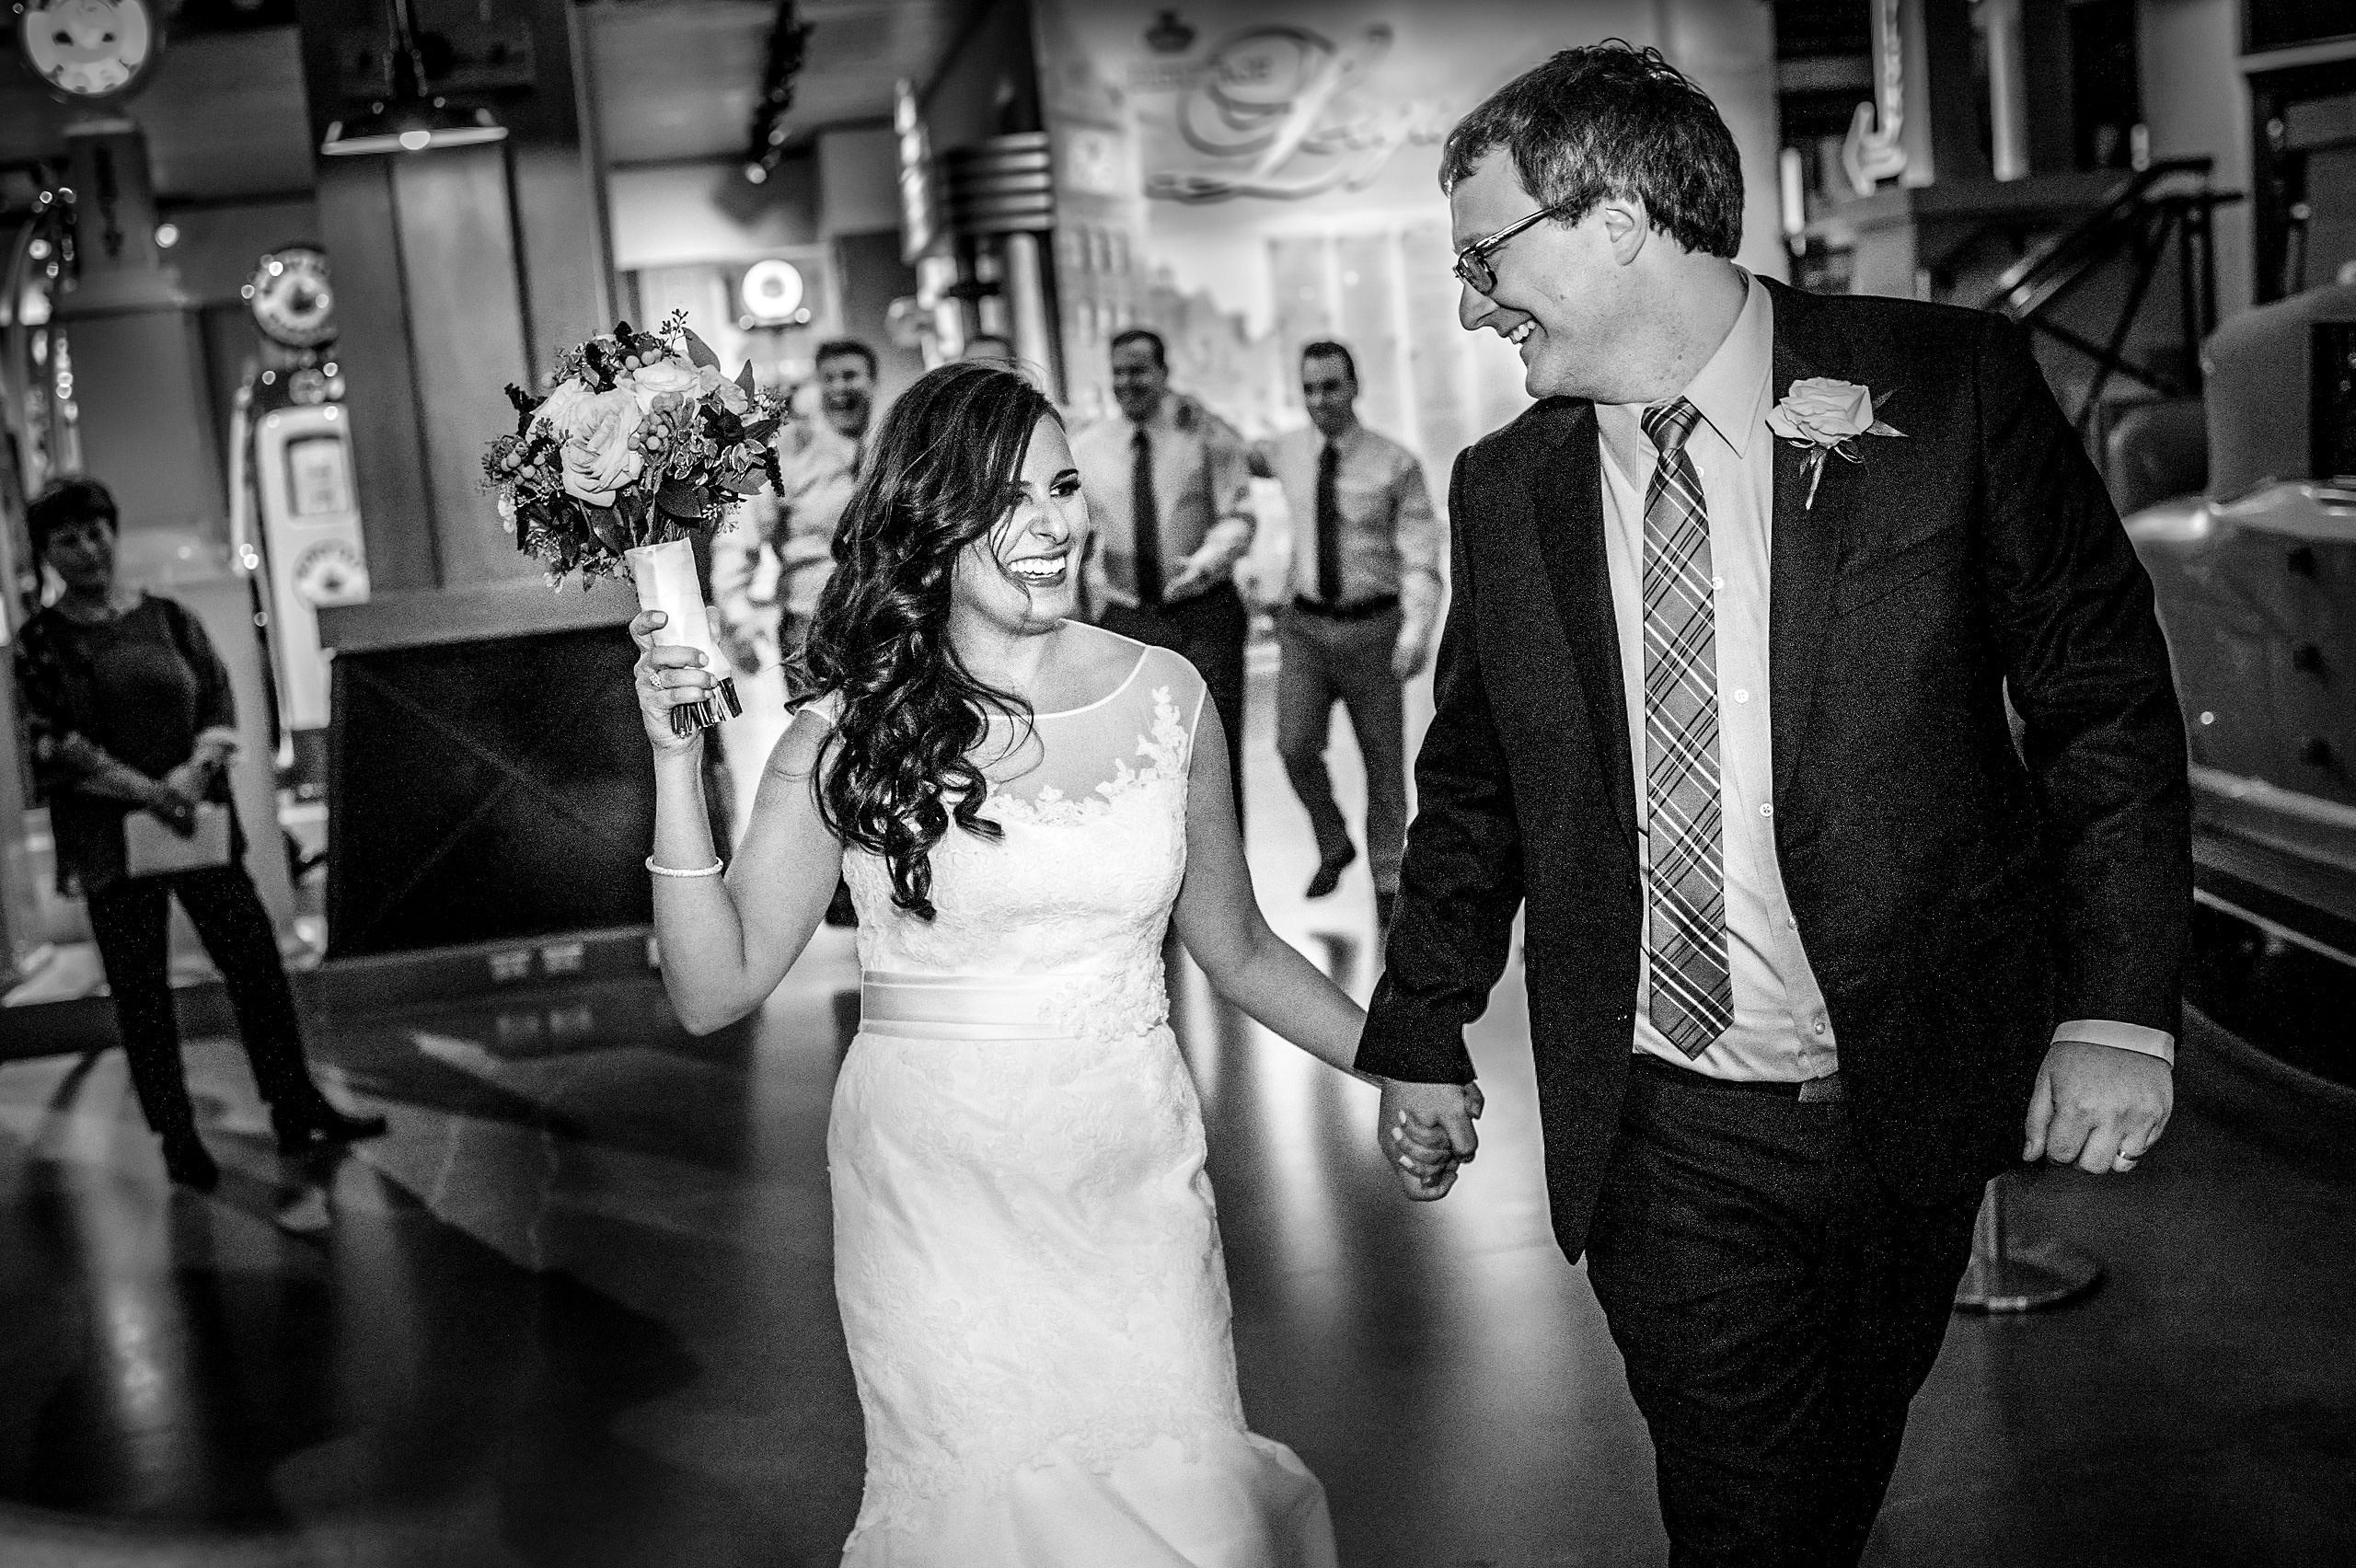 a bride and groom entering a reception hall by Calgary Jewish Wedding Photographer Sean LeBlanc